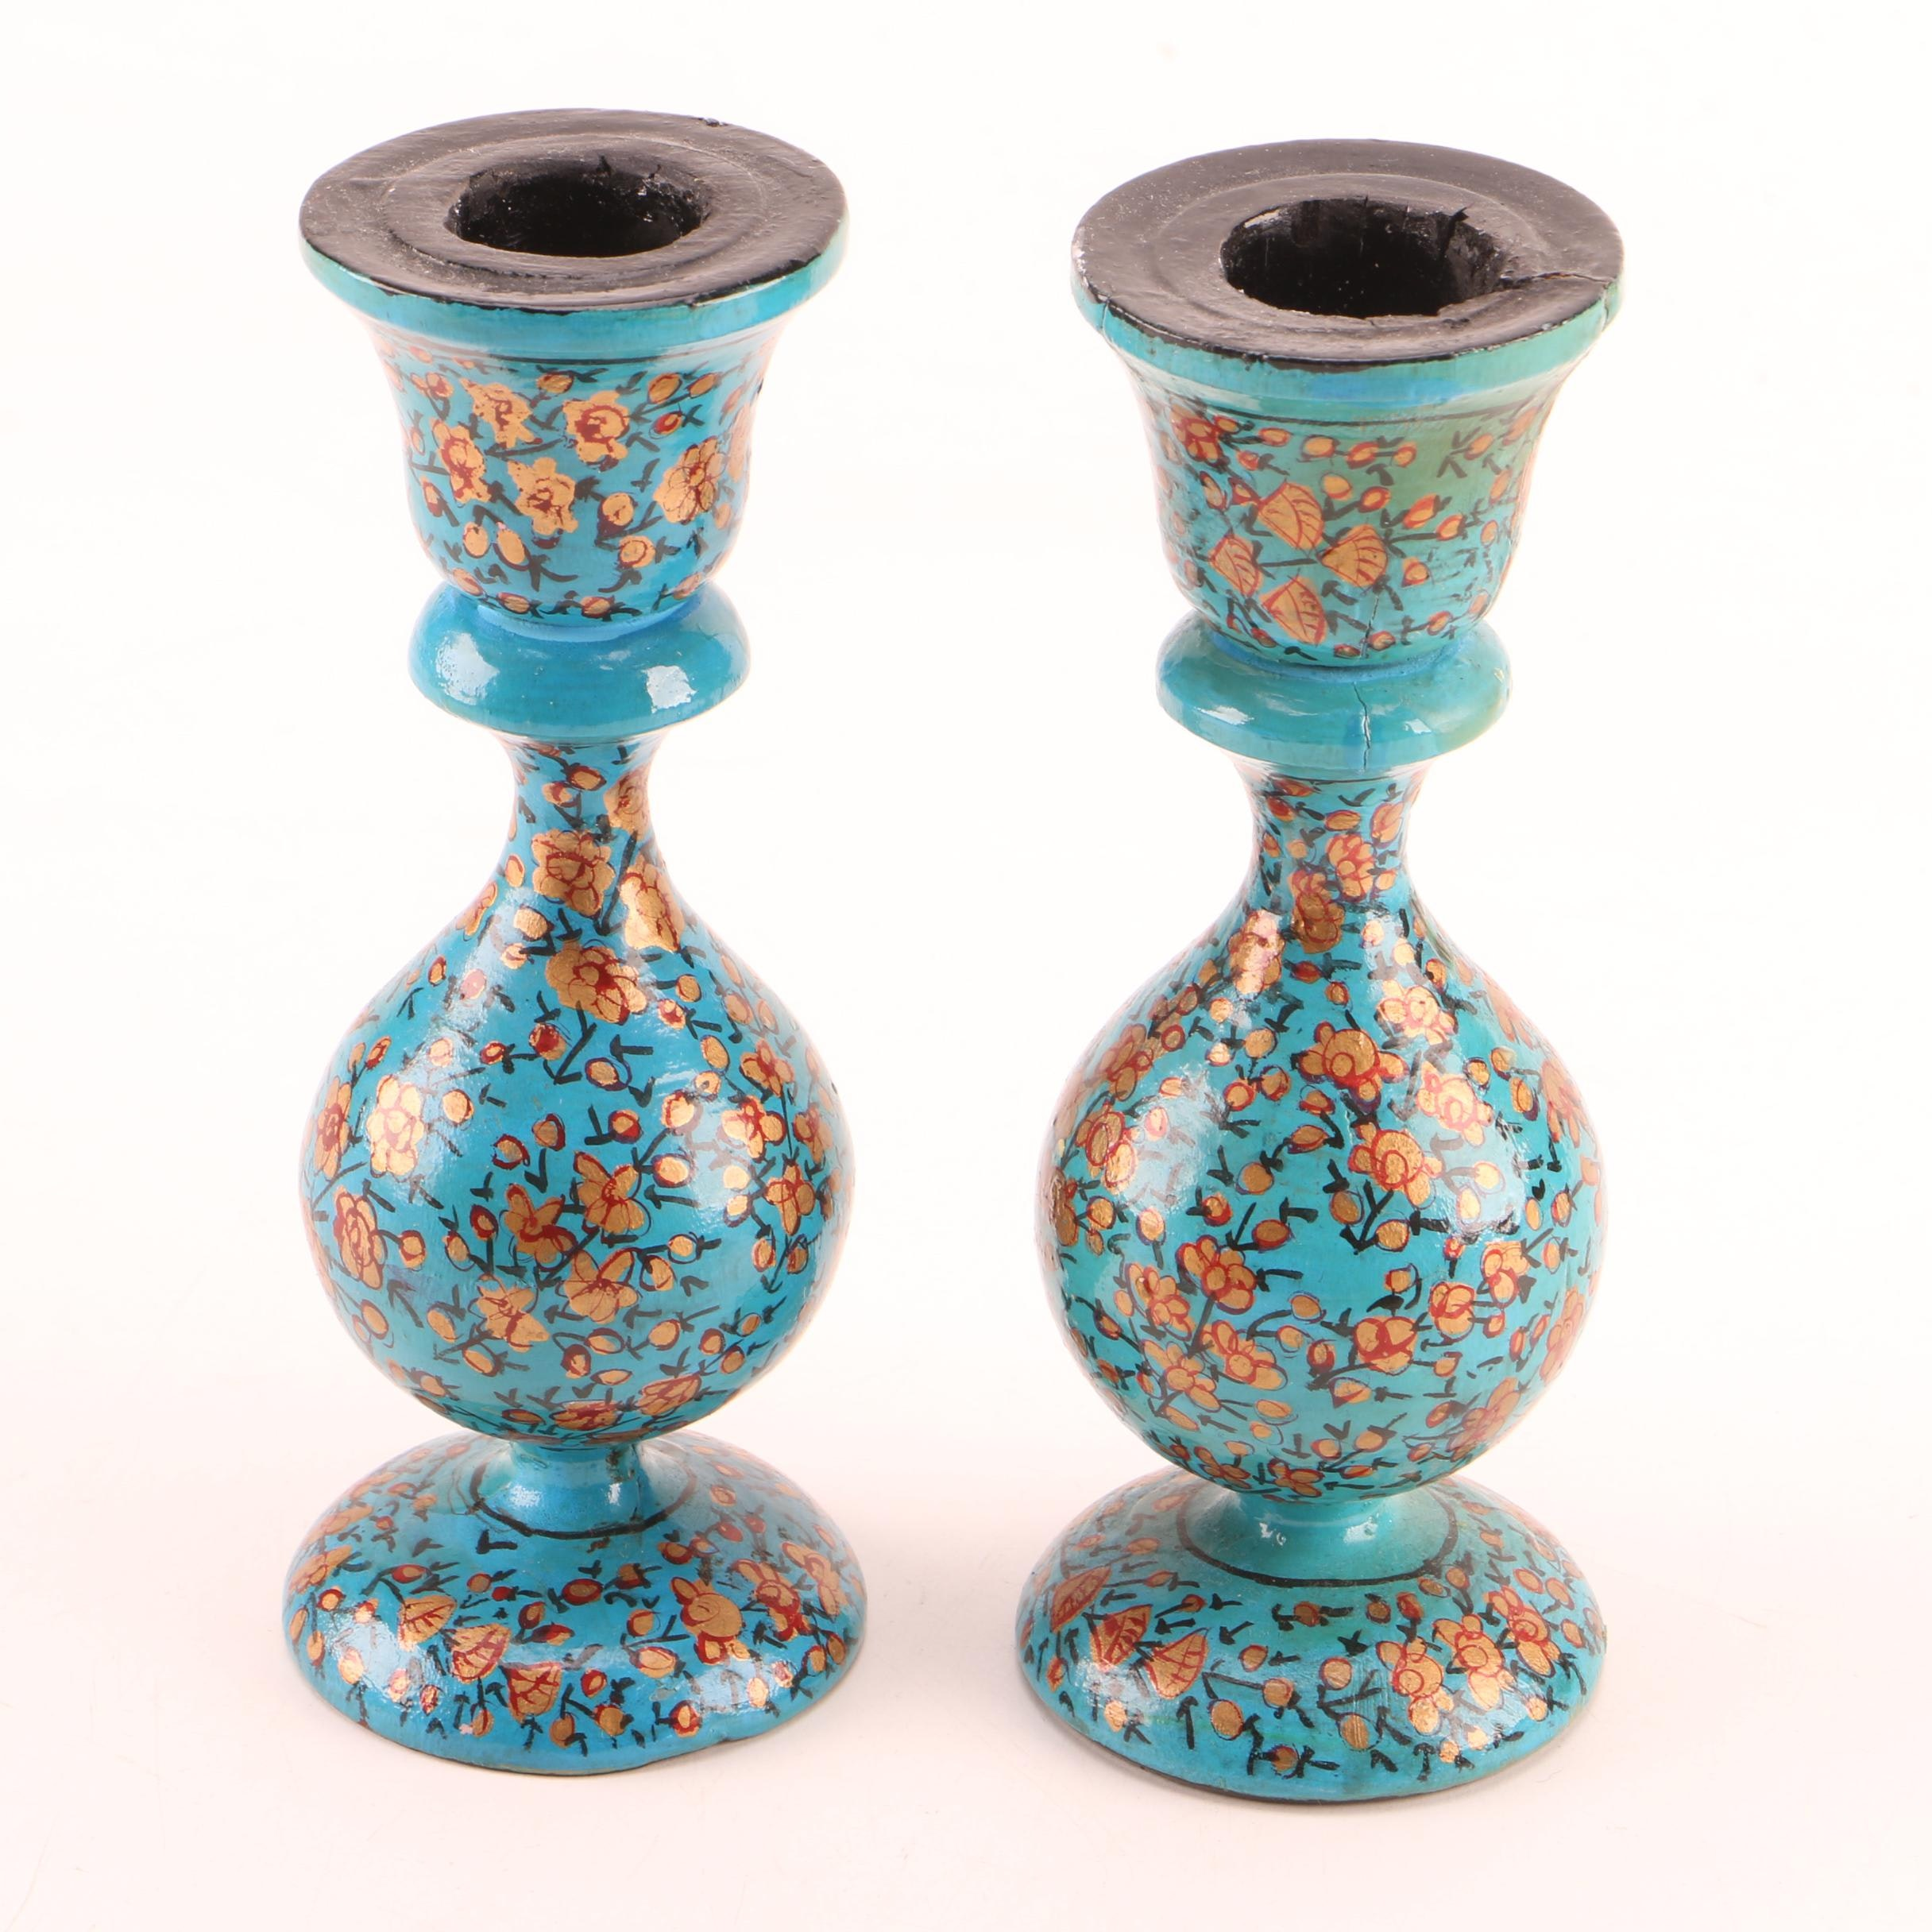 Hand-Painted Wooden Candle Holders